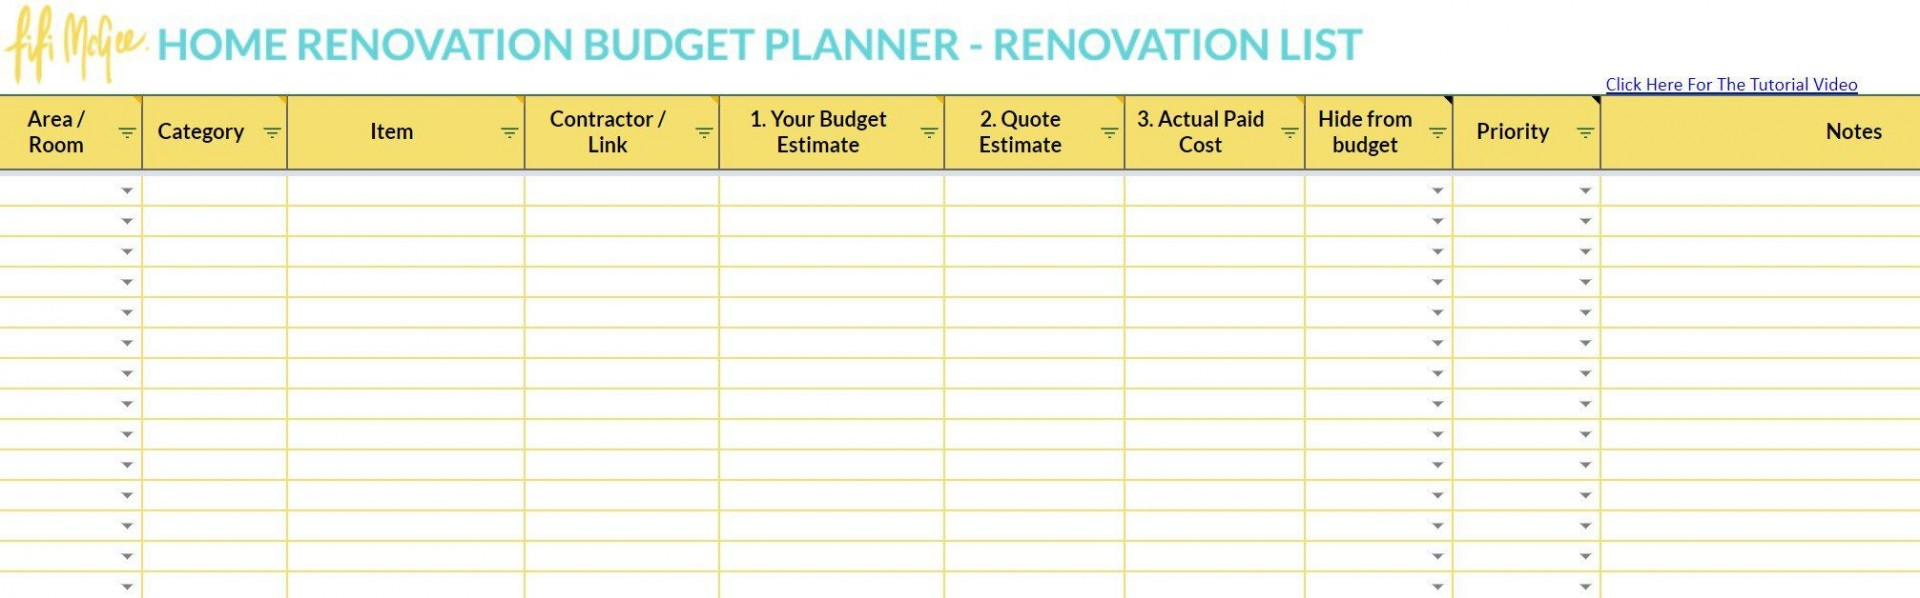 003 Wonderful Best Home Renovation Budget Template Excel Free Photo 1920